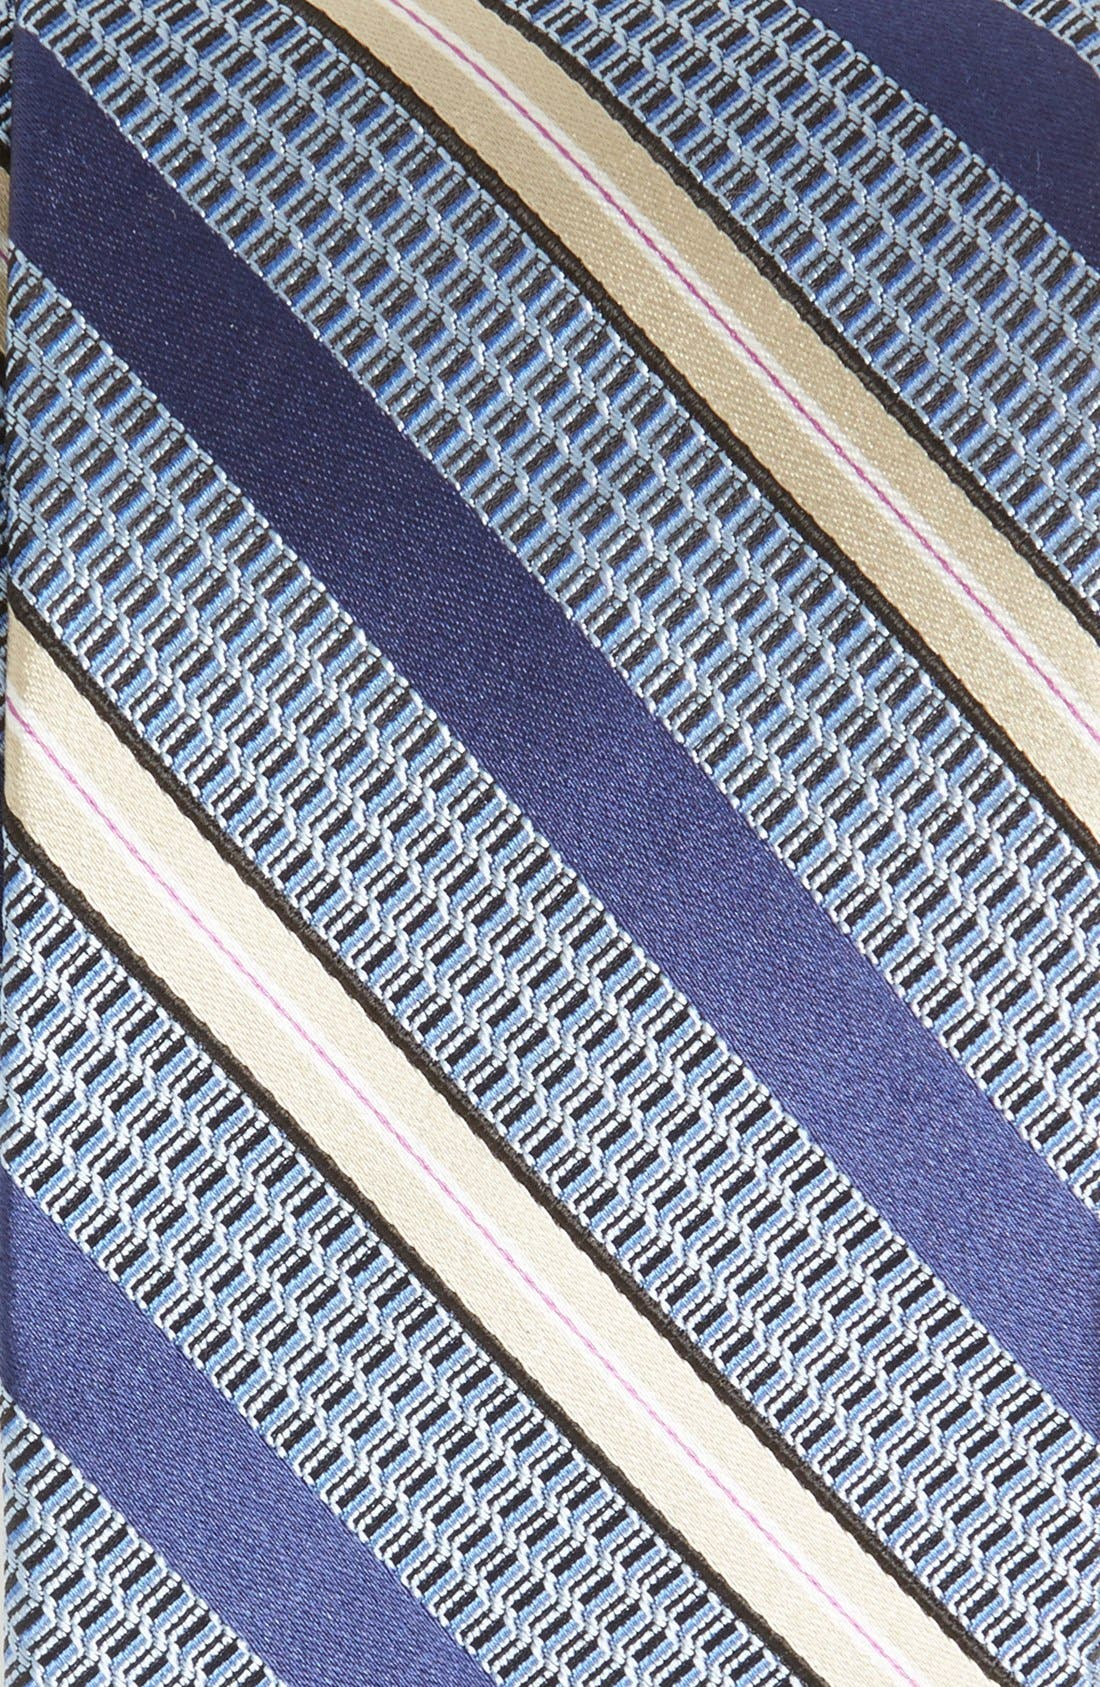 Woven Silk Tie,                             Alternate thumbnail 4, color,